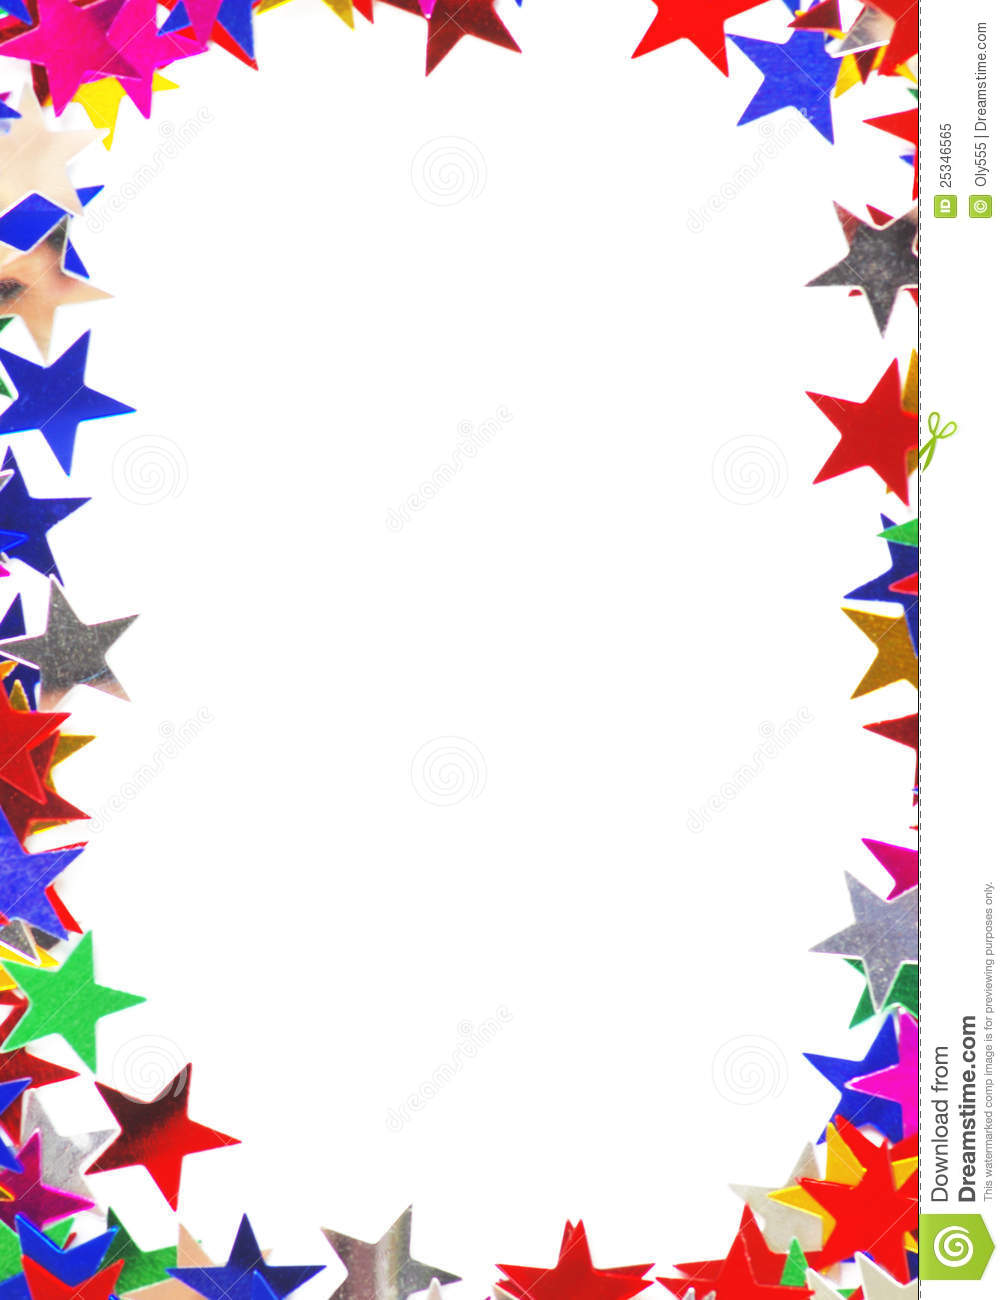 Star shaped confetti of different colors frame royalty free stock